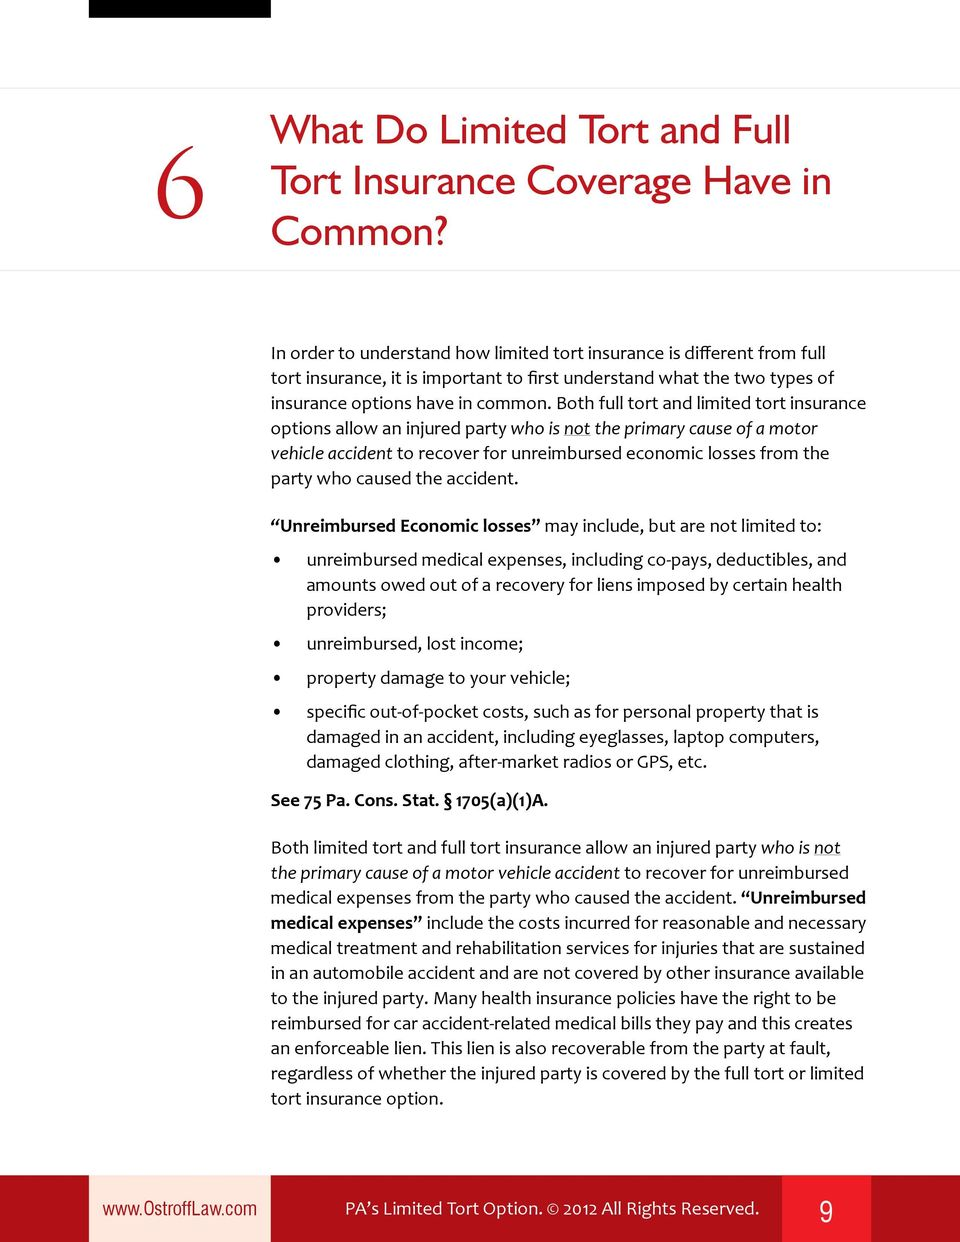 Both full tort and limited tort insurance options allow an injured party who is not the primary cause of a motor vehicle accident to recover for unreimbursed economic losses from the party who caused